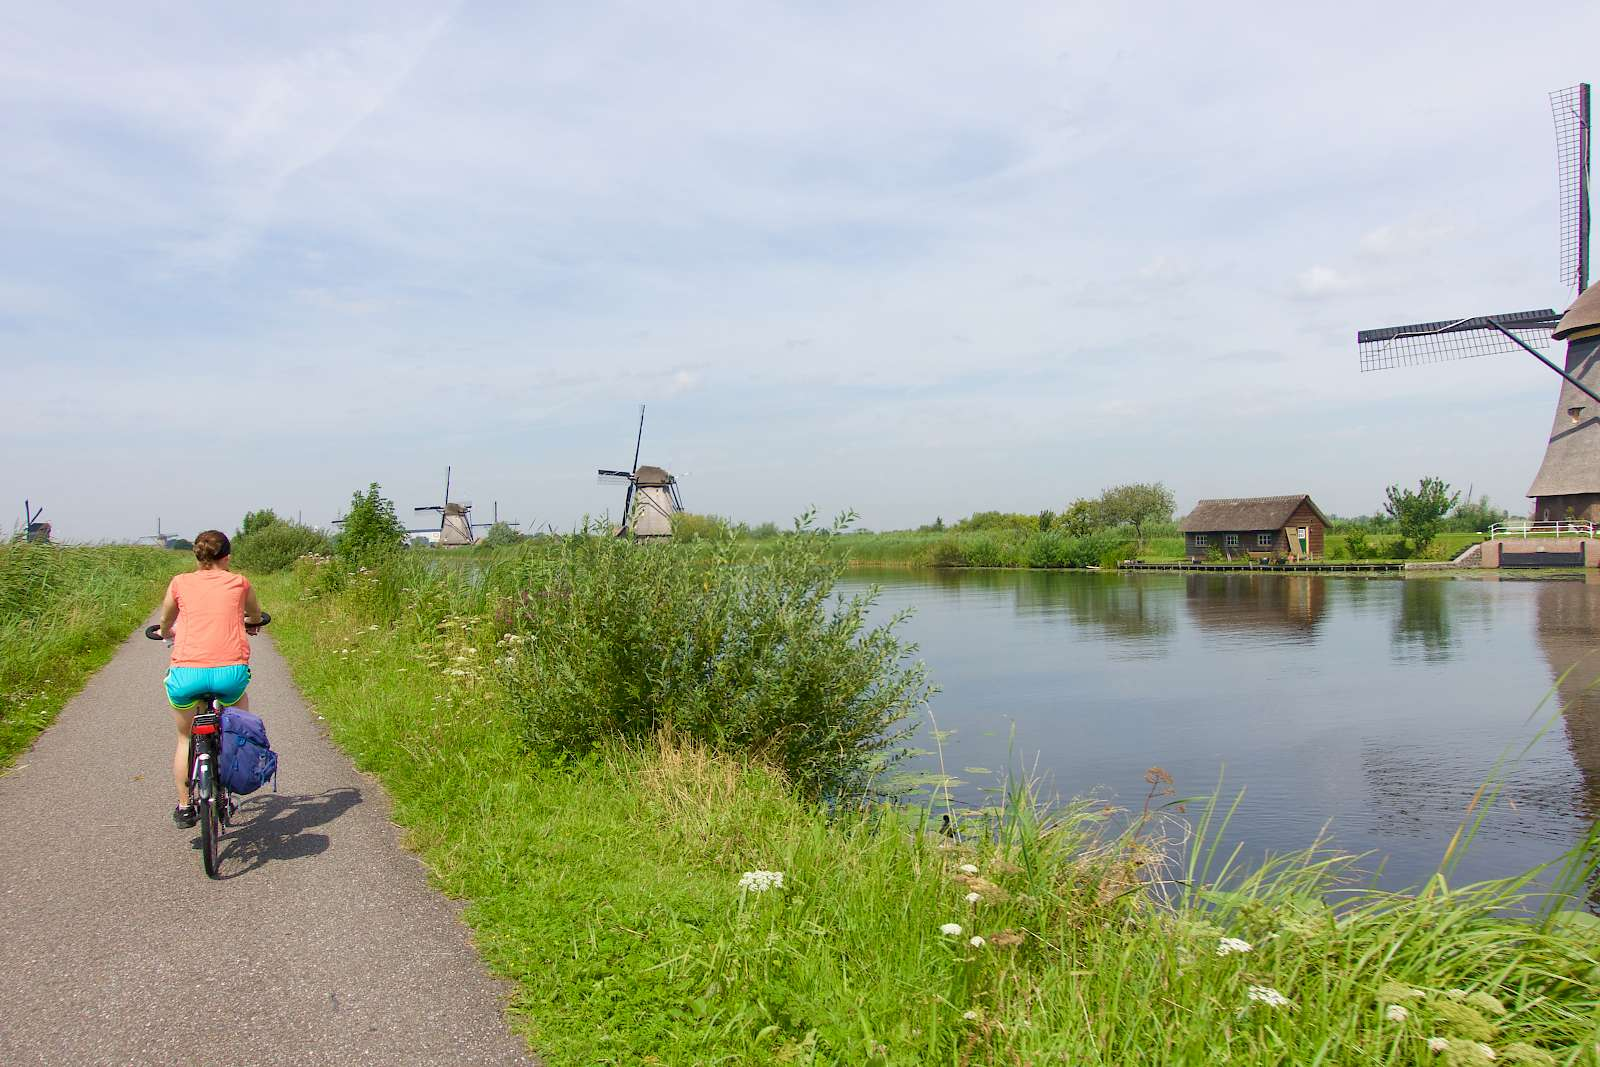 Kinderdijk – Land of Windmills